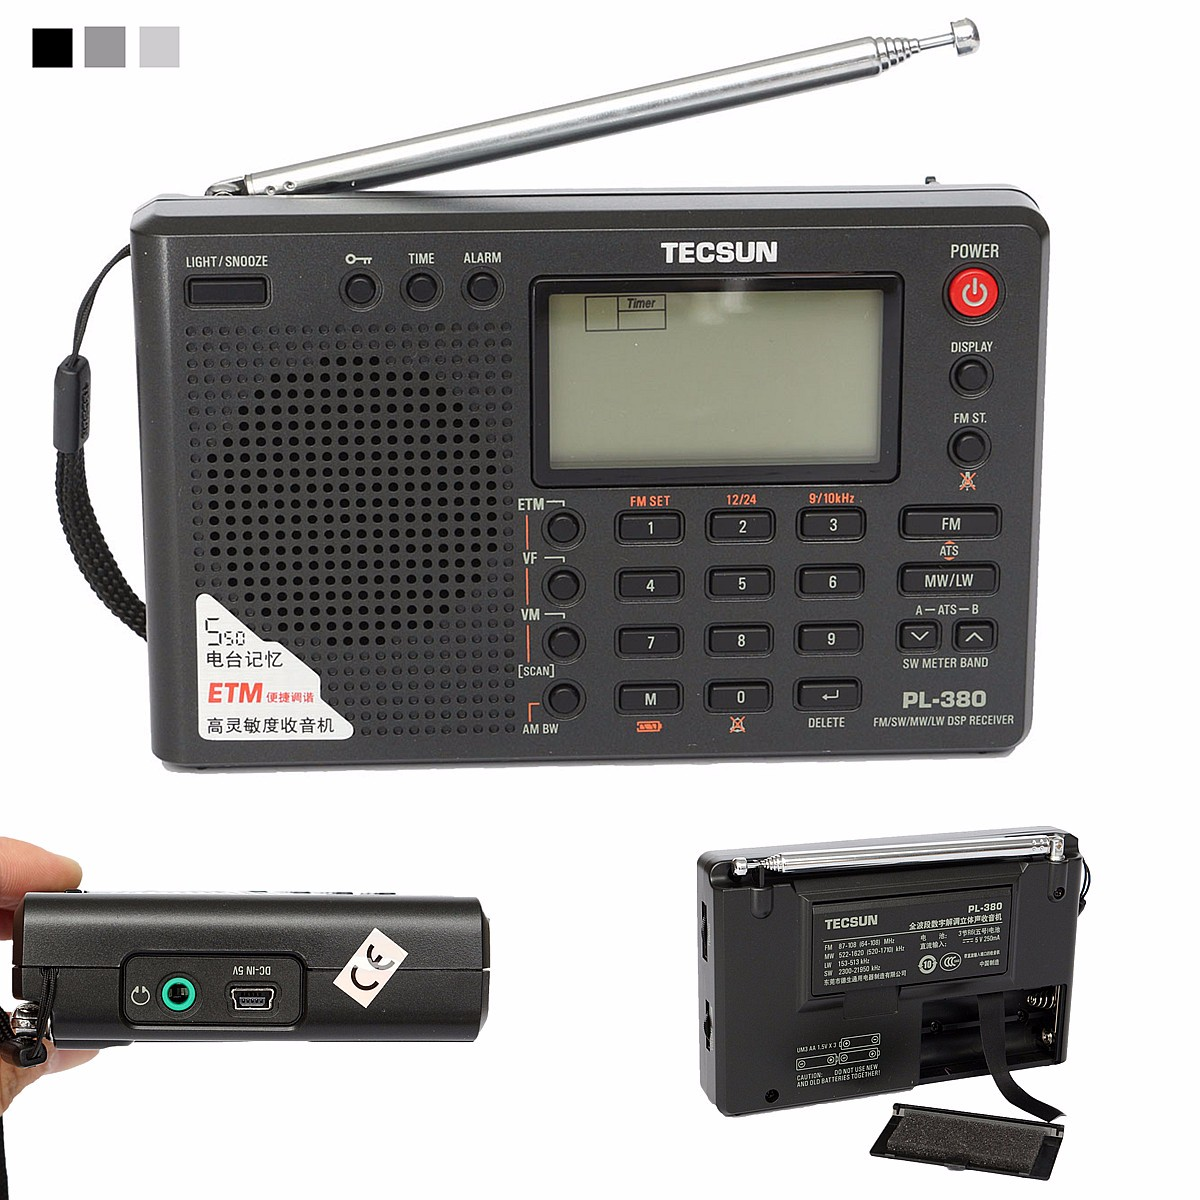 TECSUN PL-380 DSP PLL FM MW SW LW Digital Stereo Radio World-Band Receiver New 3 Colors 7 Tuning Mode Selectable 135x86x29mm new tecsun s2000 s 2000 digital fm stereo lw mw sw ssb air pll synthesized world band radio receiver shipping by dhl